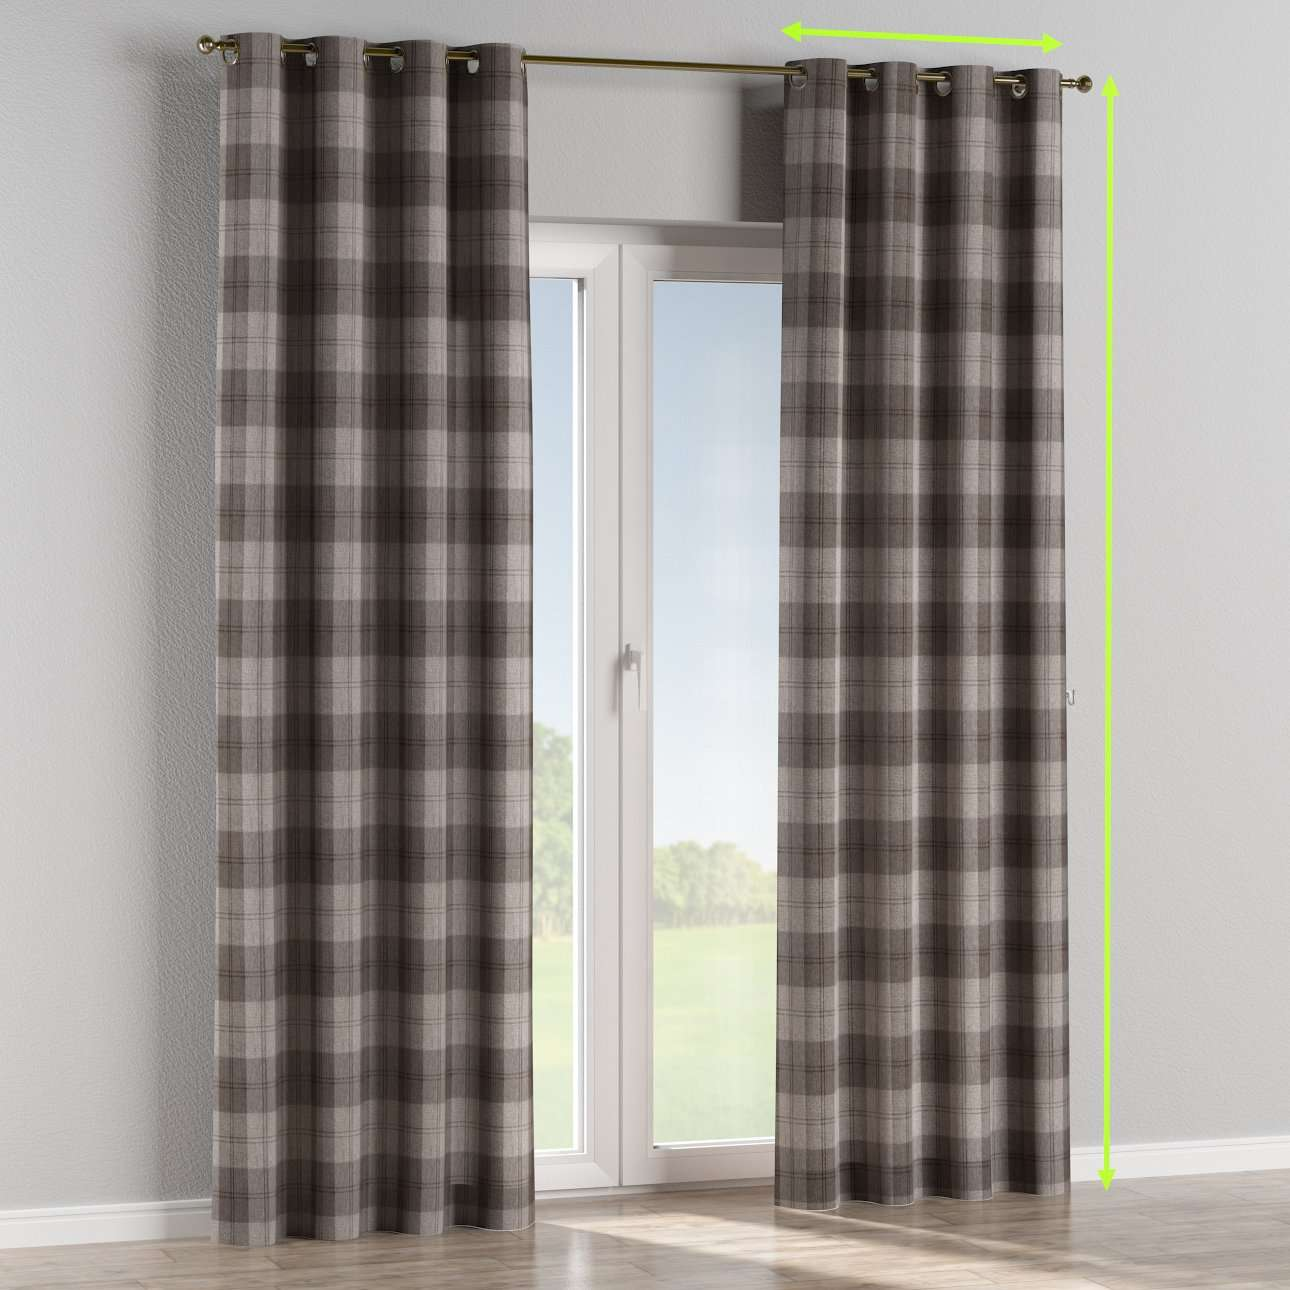 Eyelet lined curtains in collection Edinburgh , fabric: 115-75